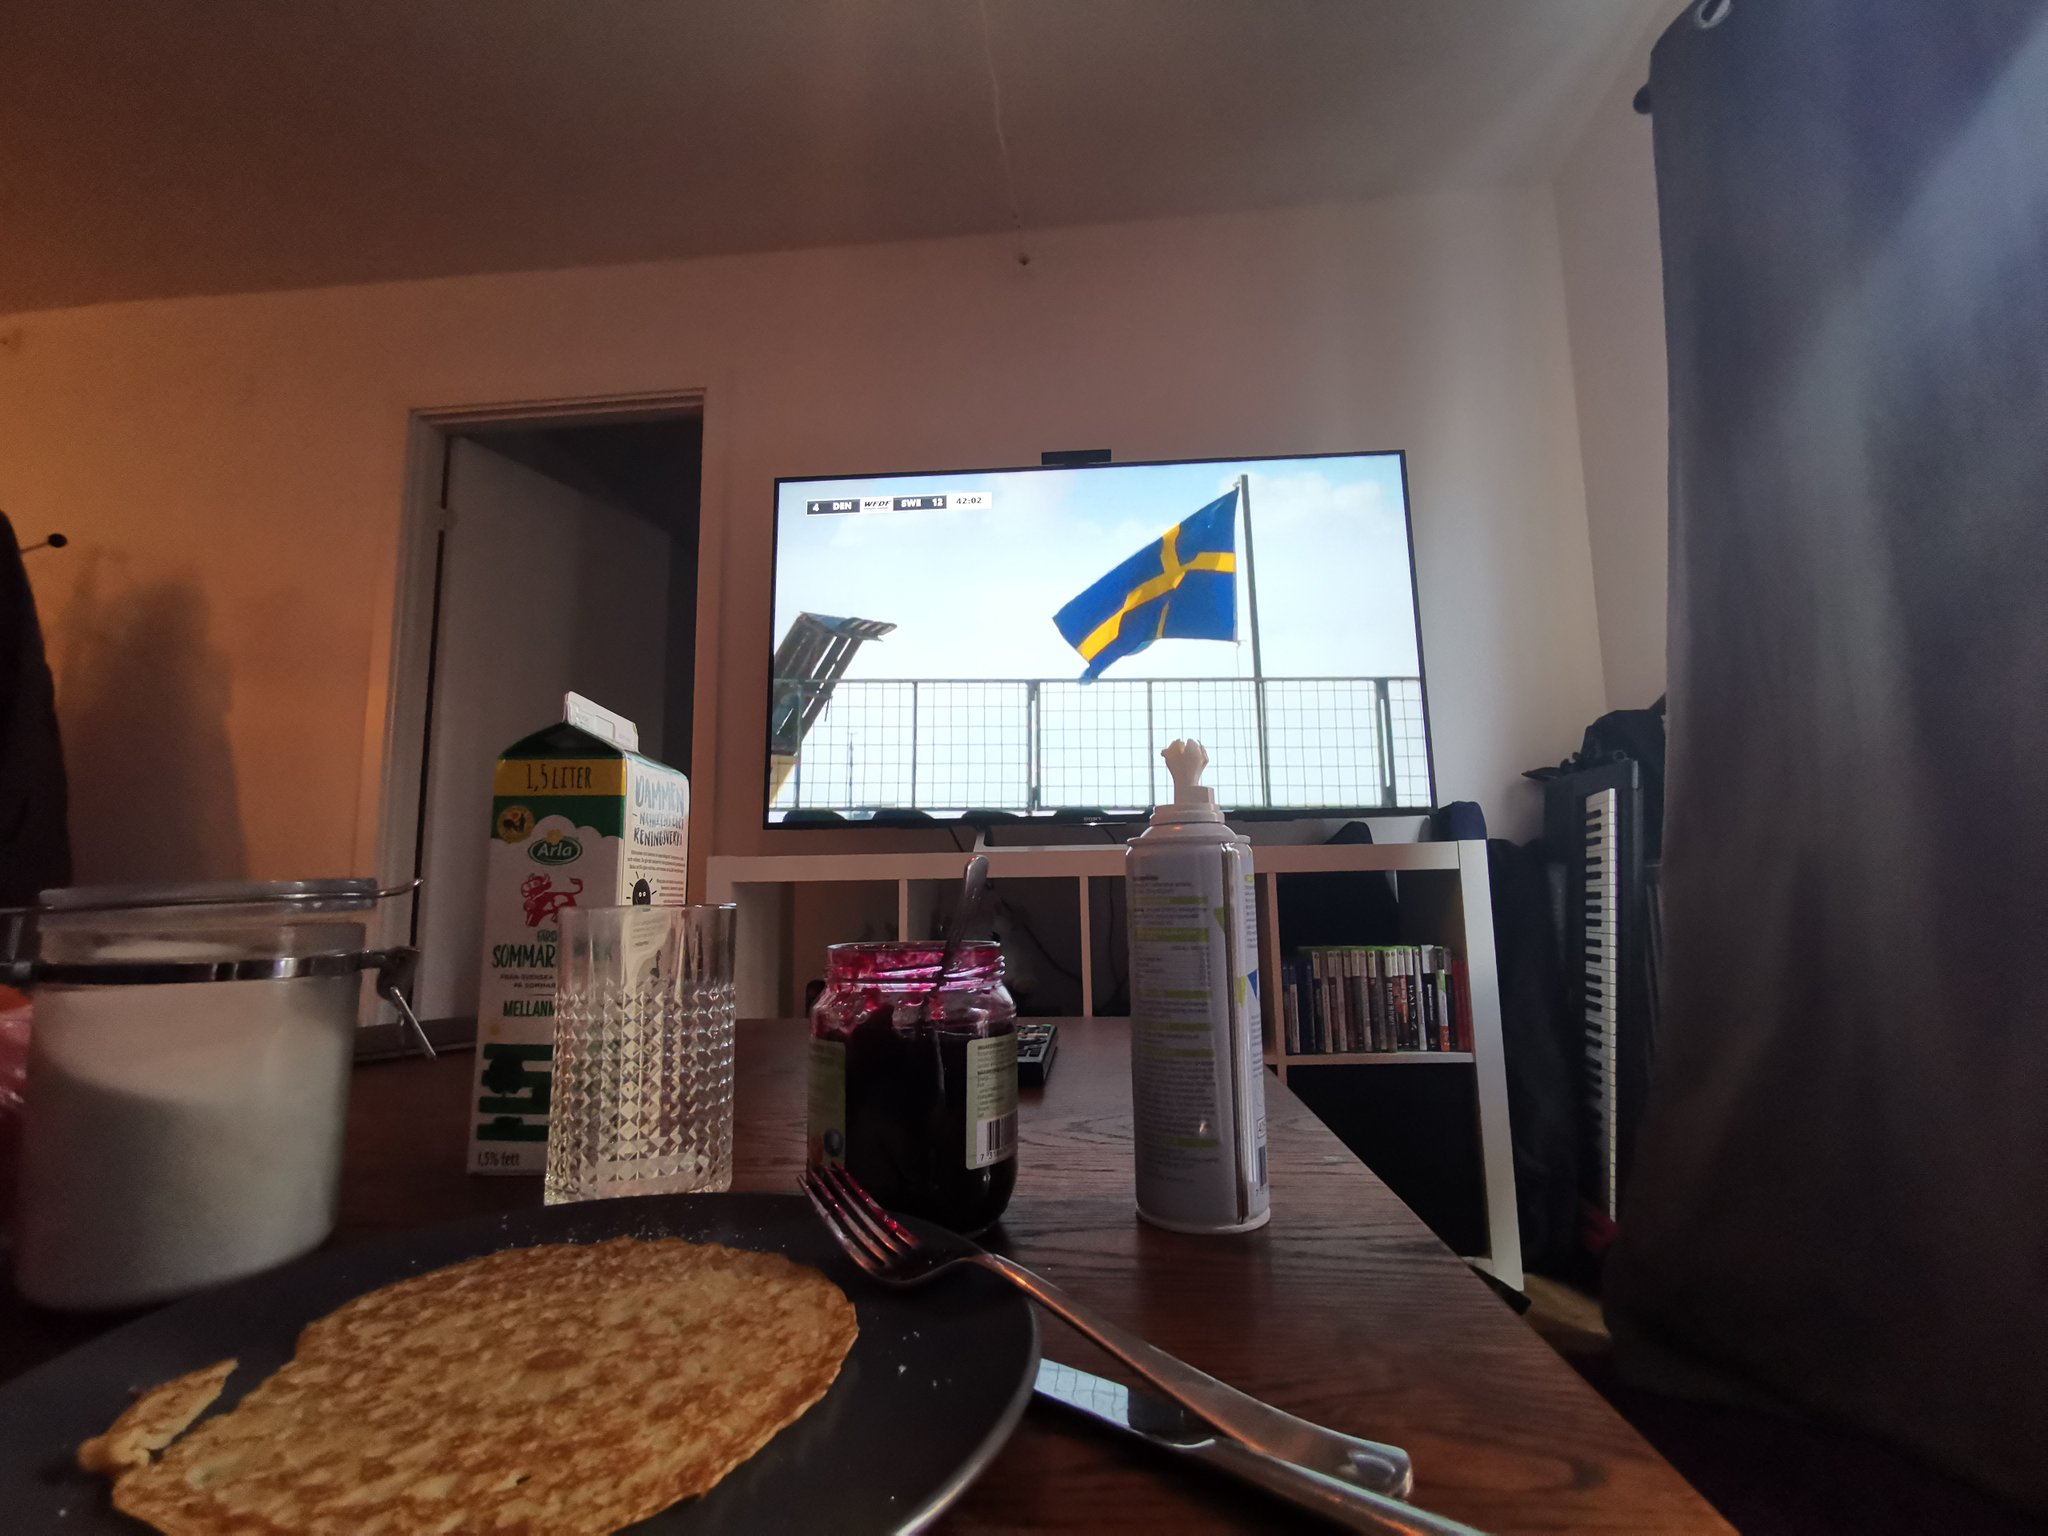 This is how I #EBUC2019  Go #swedenultimate!  @tomstyles @EBUC2019 https://t.co/ous124bqmk <a href='https://twitter.com/HenrikMontin/status/1126037367188533248/photo/1' target='_blank'>See original &raquo;</a>